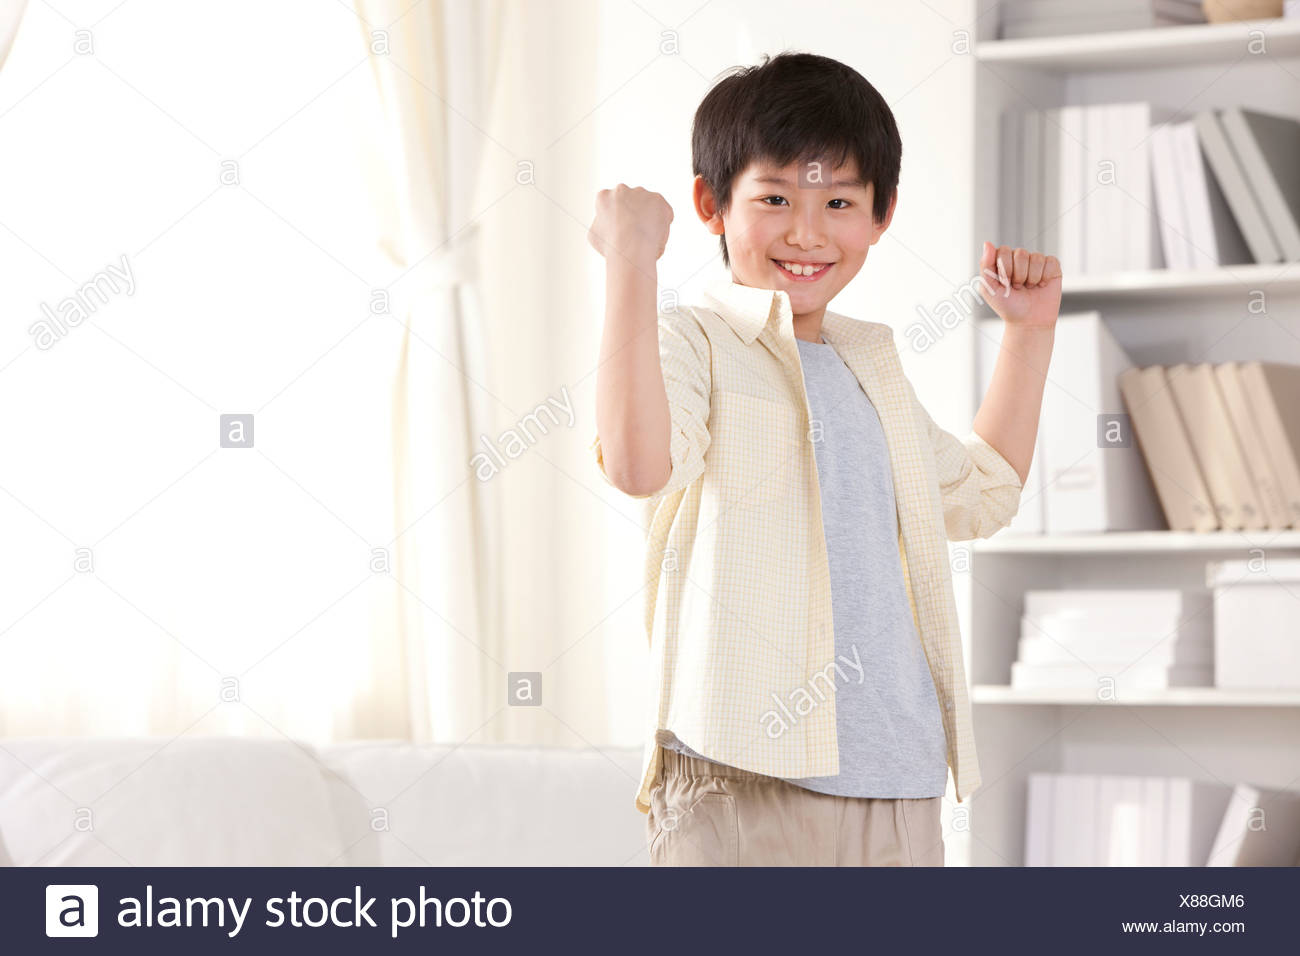 Little boy showing strength - Stock Image